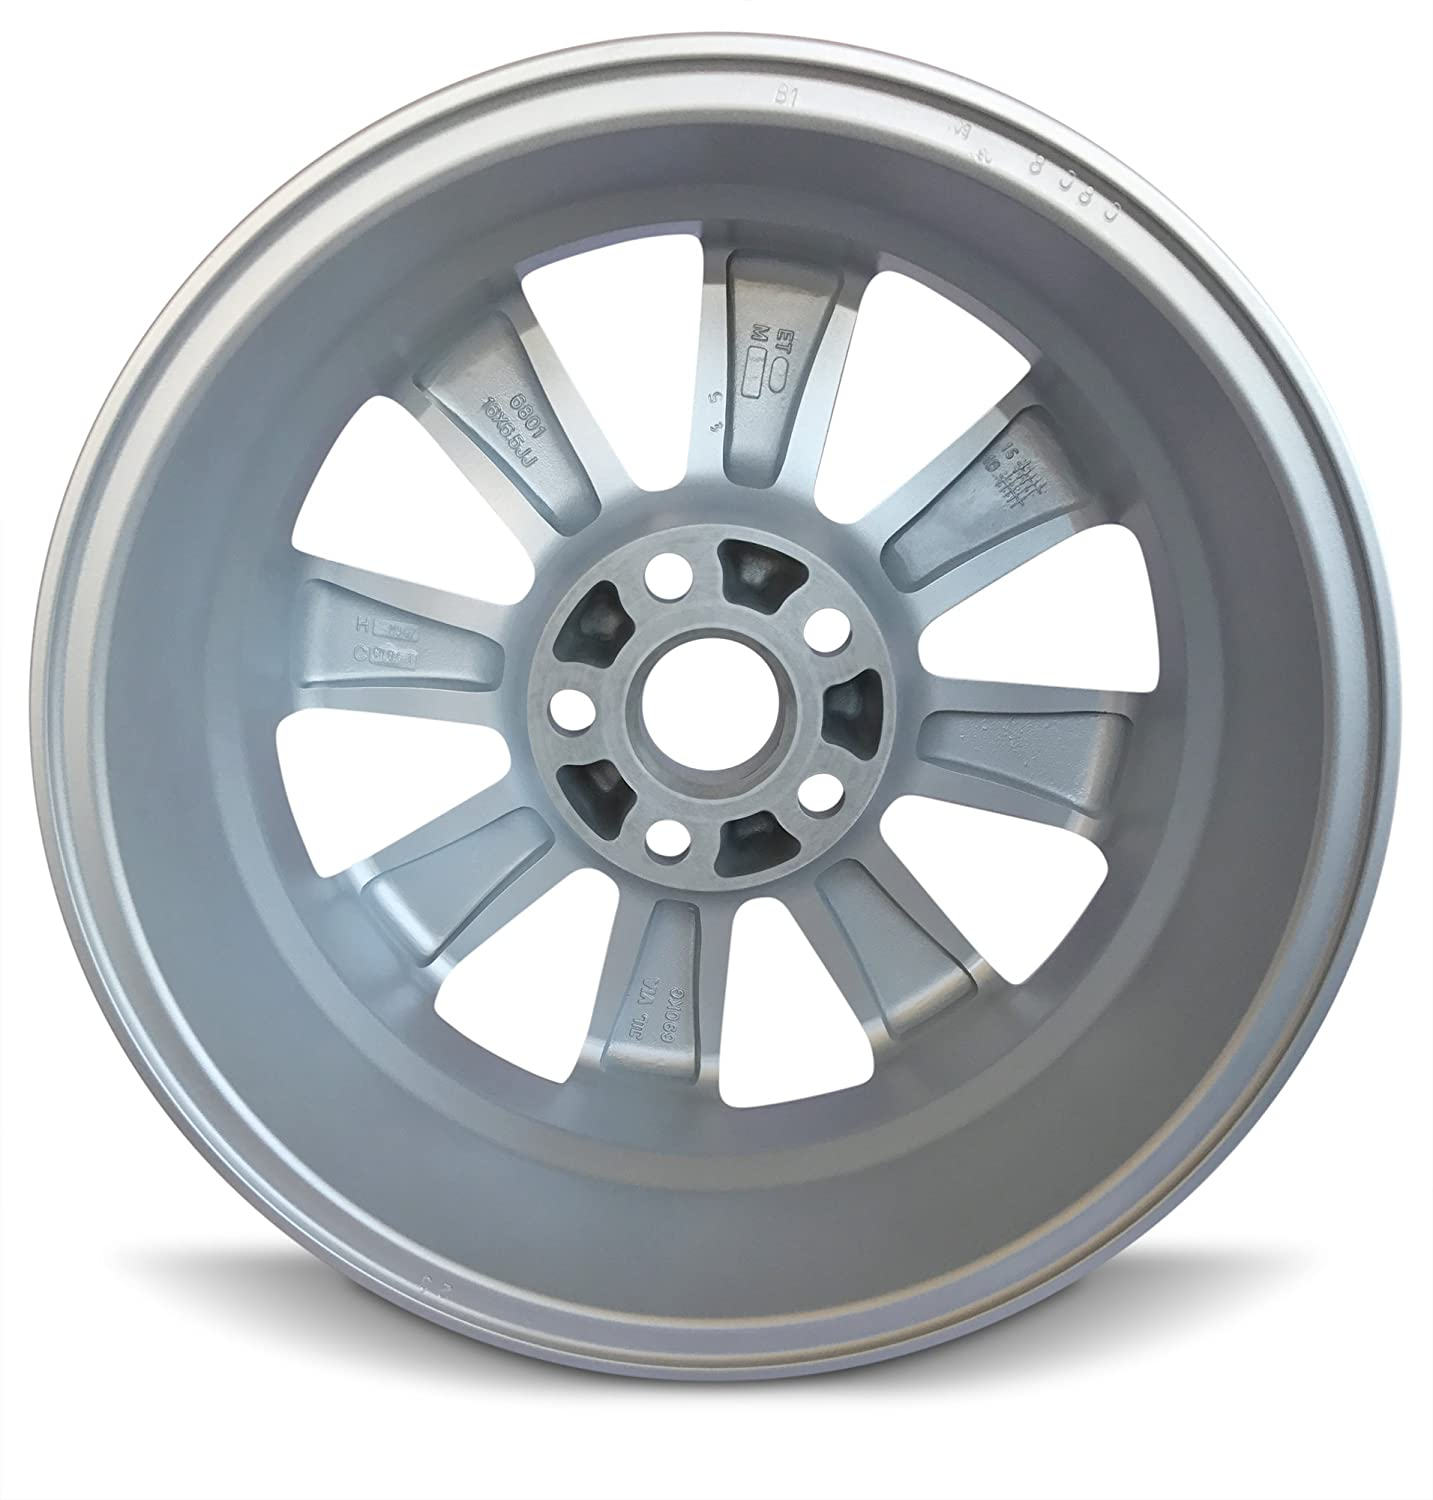 Amazon.com: Toyota Camry 16 Inch 5 Lug 8 Spoke Alloy Rim/16x6.5 ...